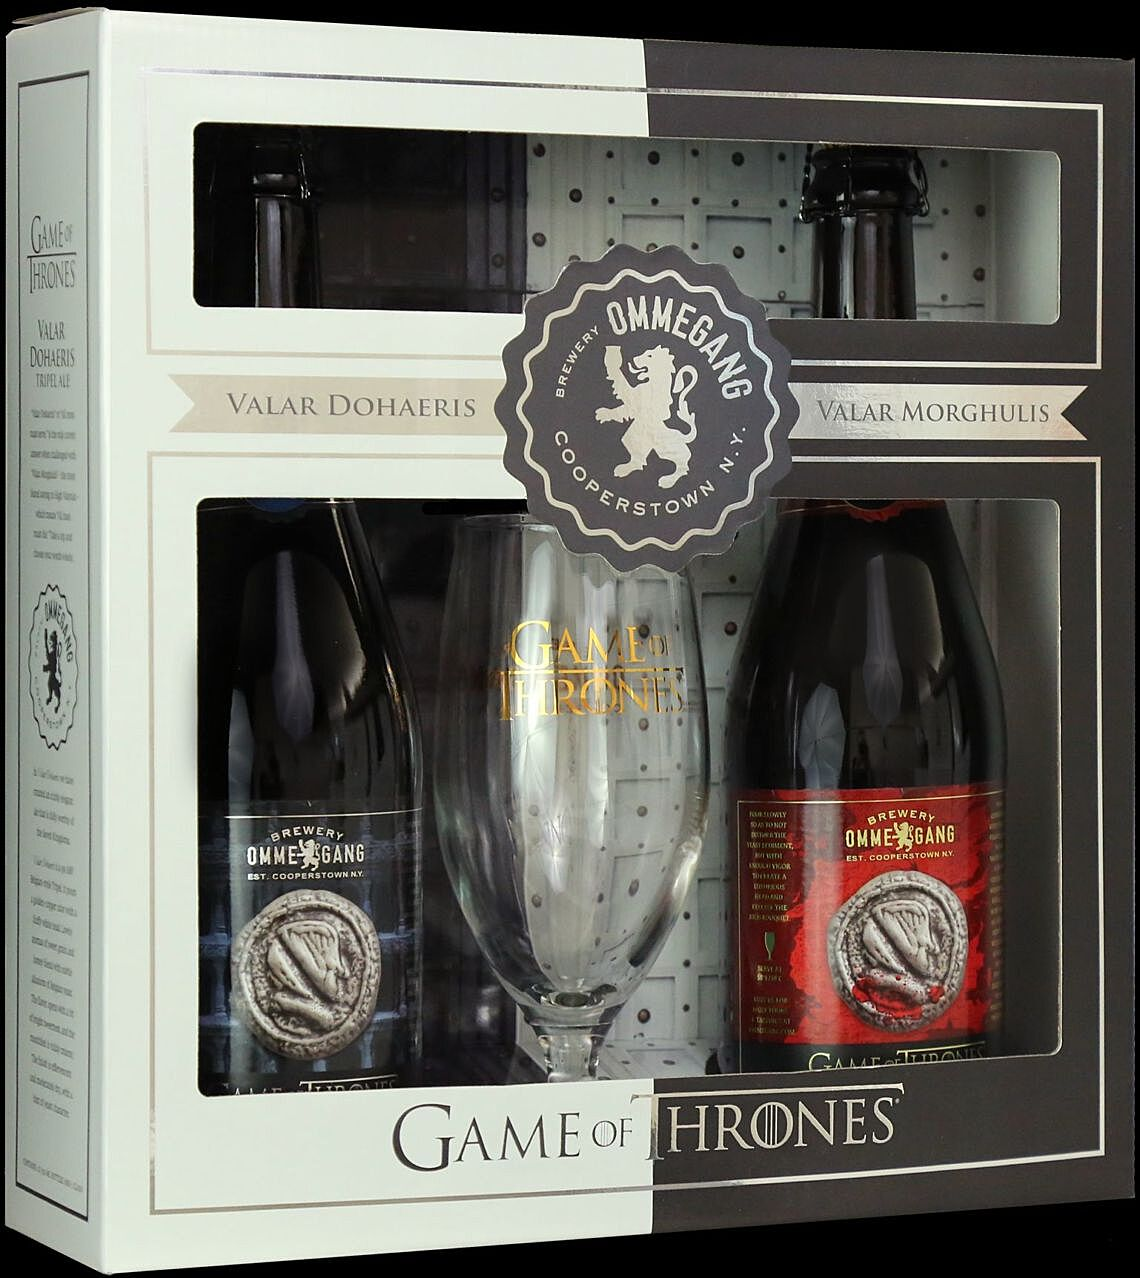 Holiday 2016 game of thrones gift guide for Game of thrones christmas gifts 2016